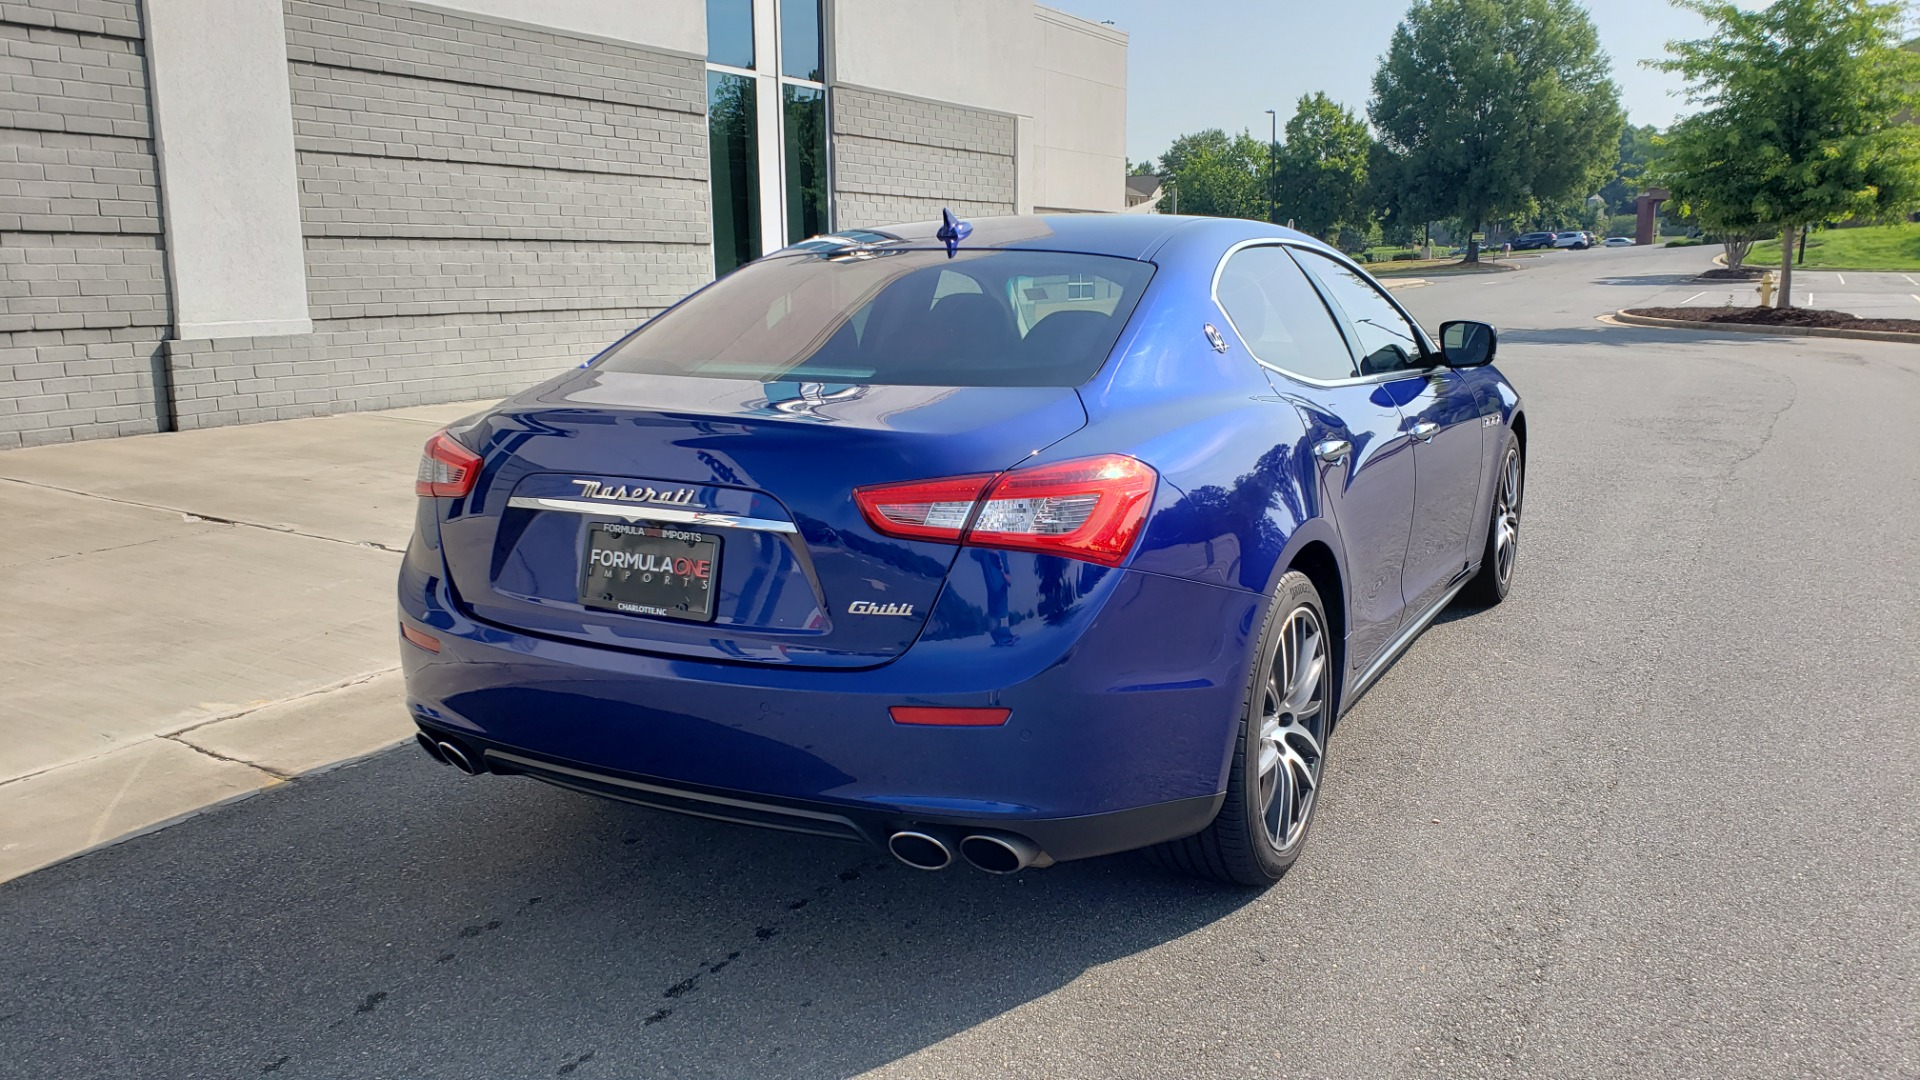 Used 2015 Maserati GHIBLI SEDAN / 3.0L V6 / 8-SPD AUTO / NAV / HTD STS / SUNROOF / REARVIEW for sale $24,495 at Formula Imports in Charlotte NC 28227 2